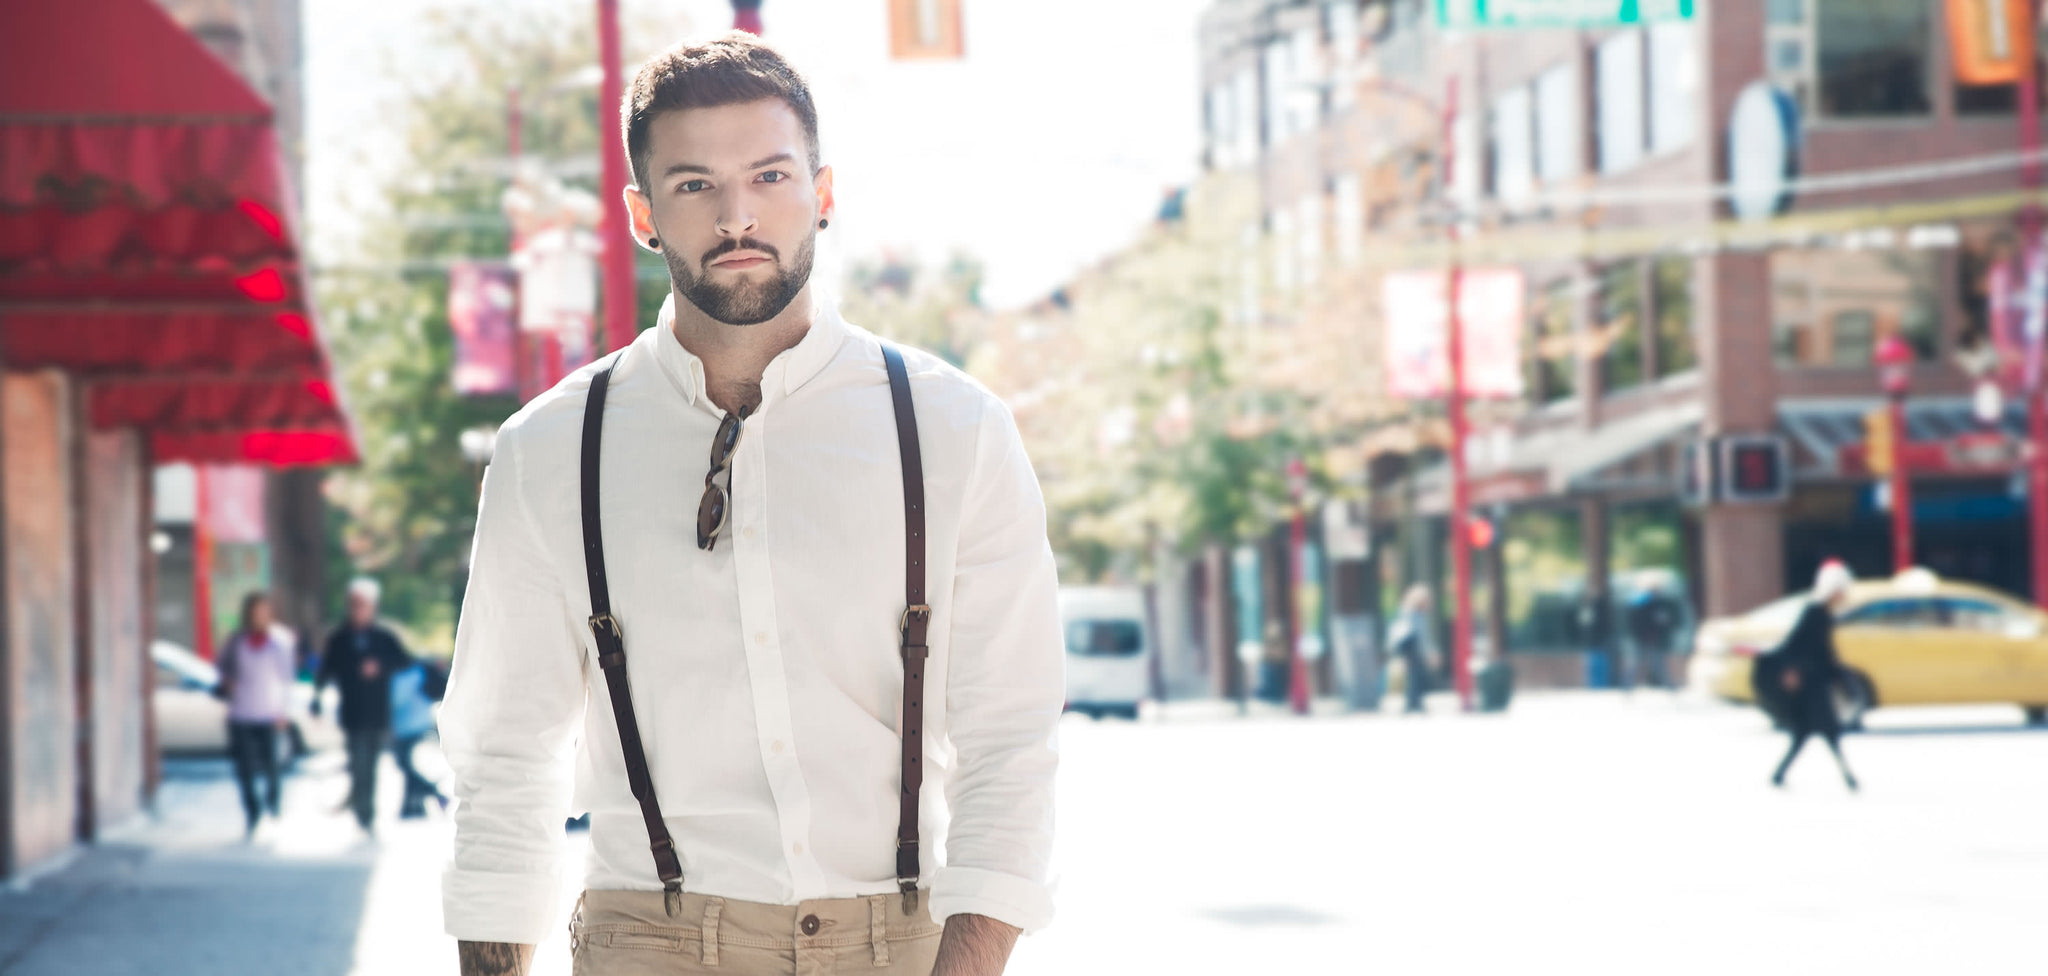 Fashion style How to suspenders wear casually for lady